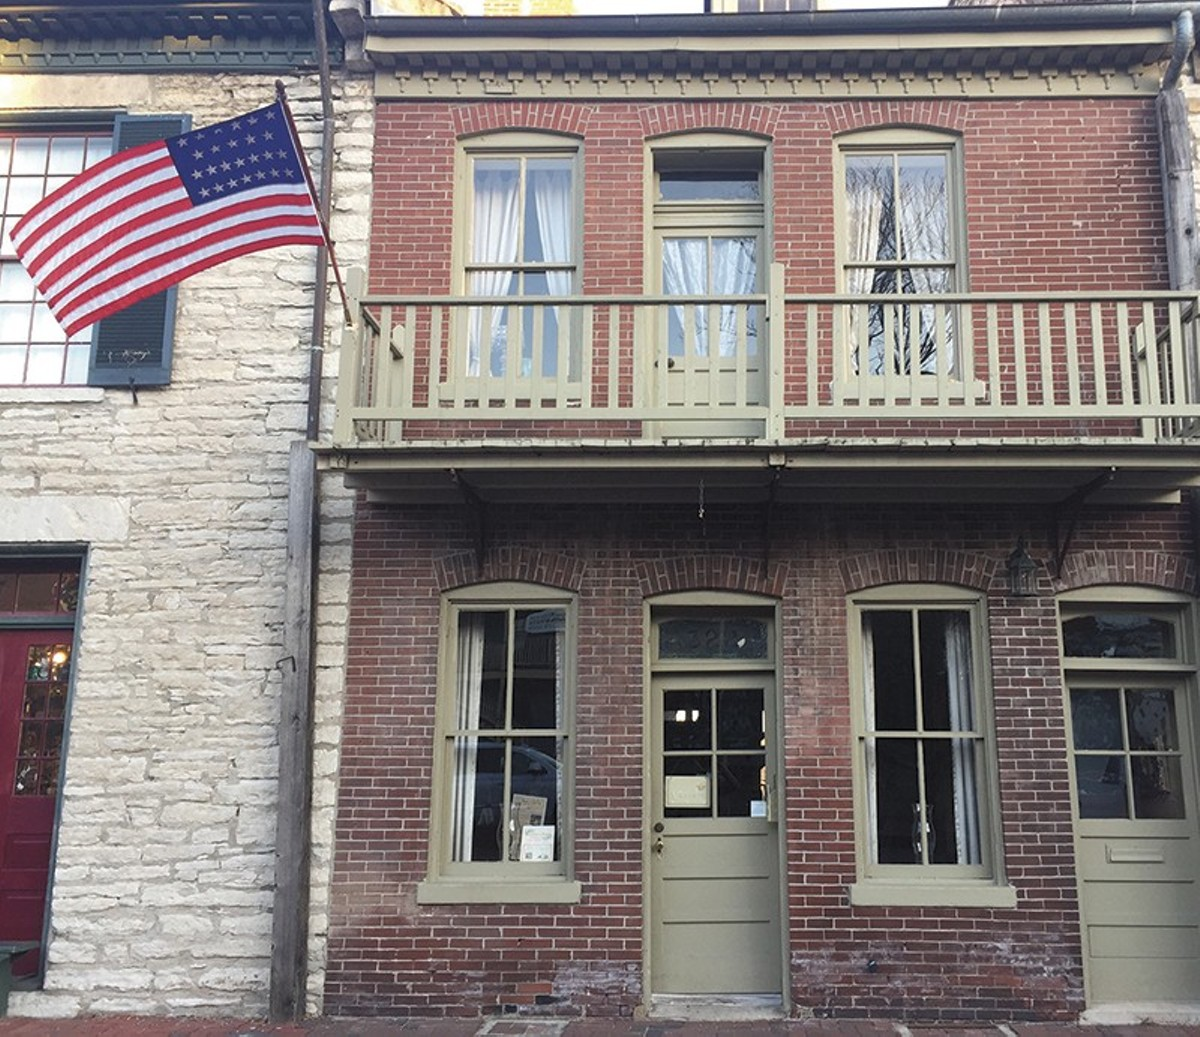 St. Charles was Missouri's first capital. Main Street has many buildings dating back to the early 1800s.